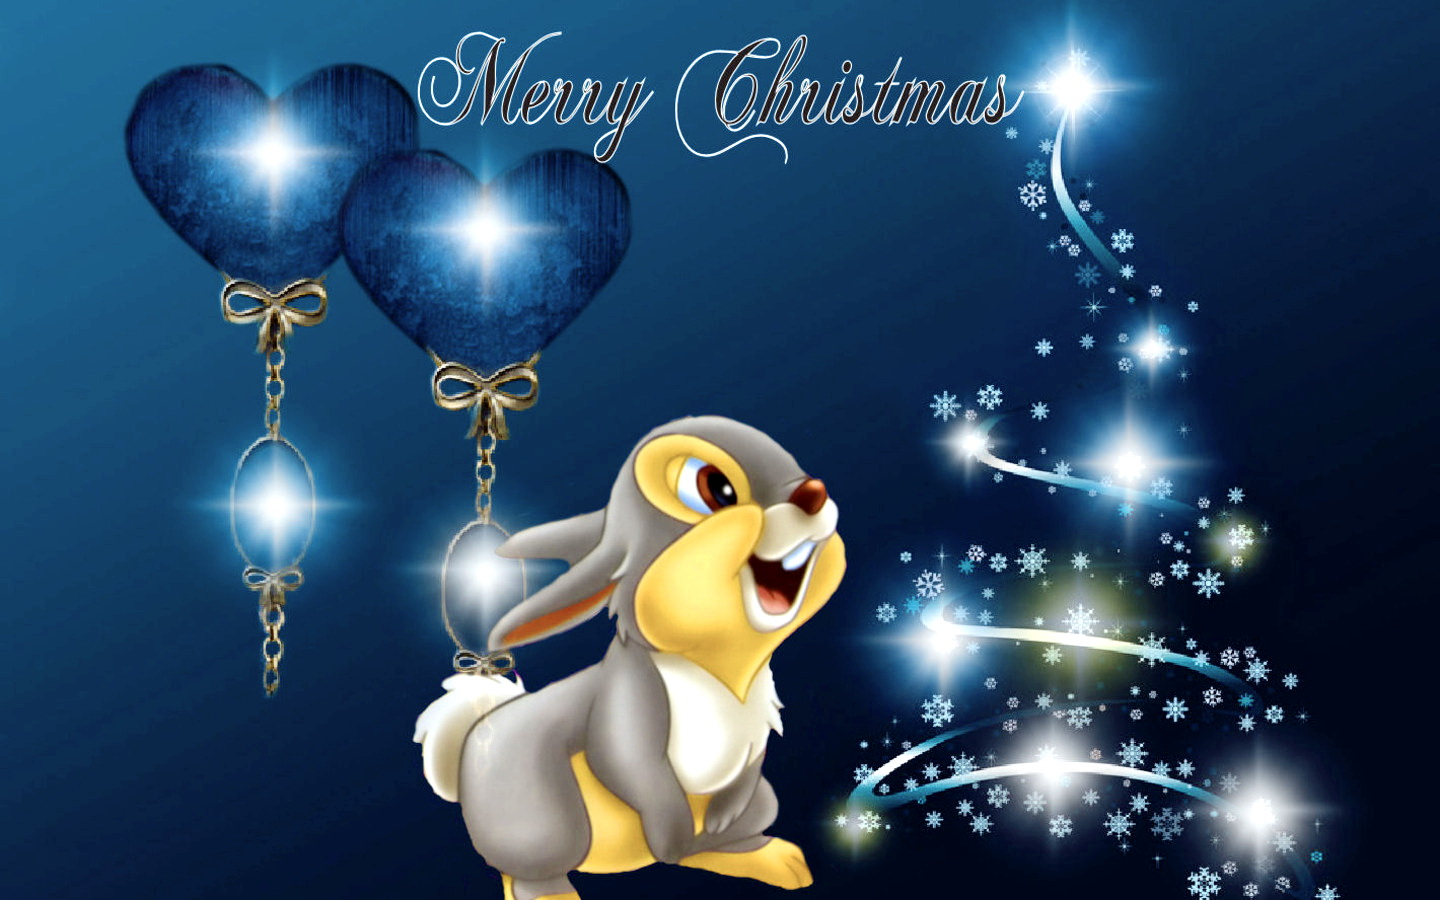 Cartoon Disney Christmas Wallpaper wallpaper is a great wallpaper 1440x900